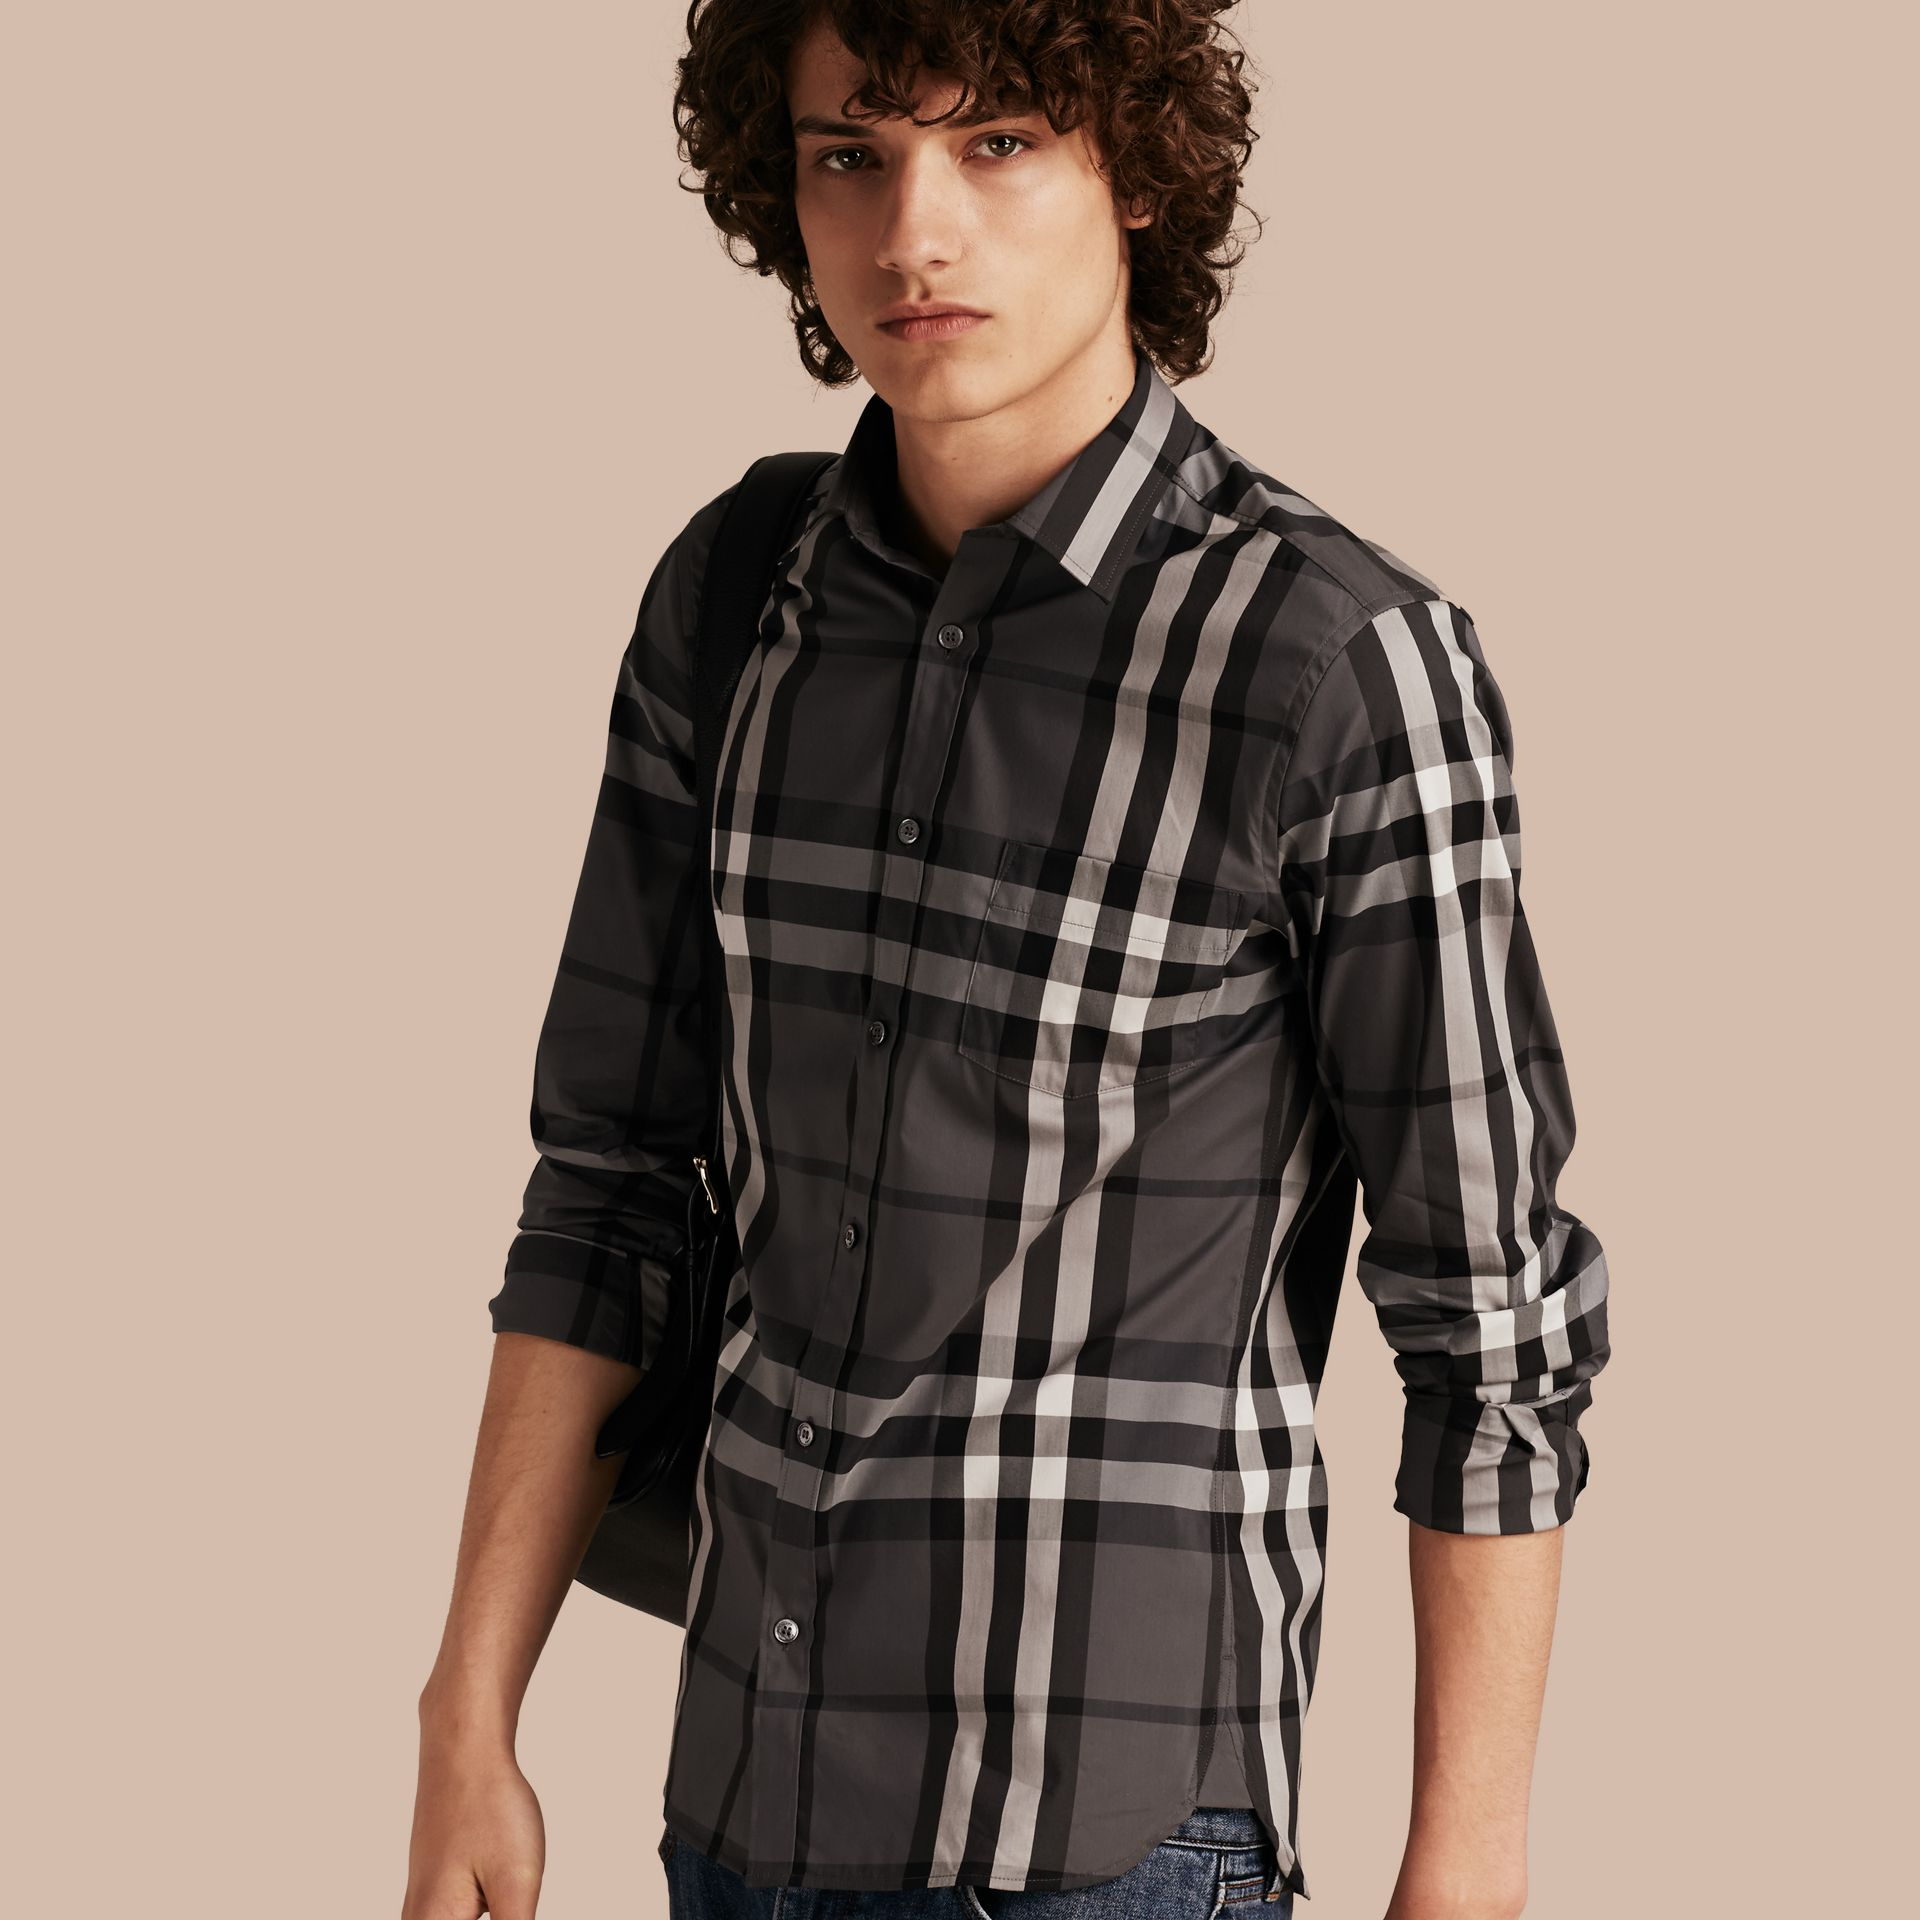 Chemise en coton extensible à motif check (Anthracite) - Homme | Burberry - photo de la galerie 1